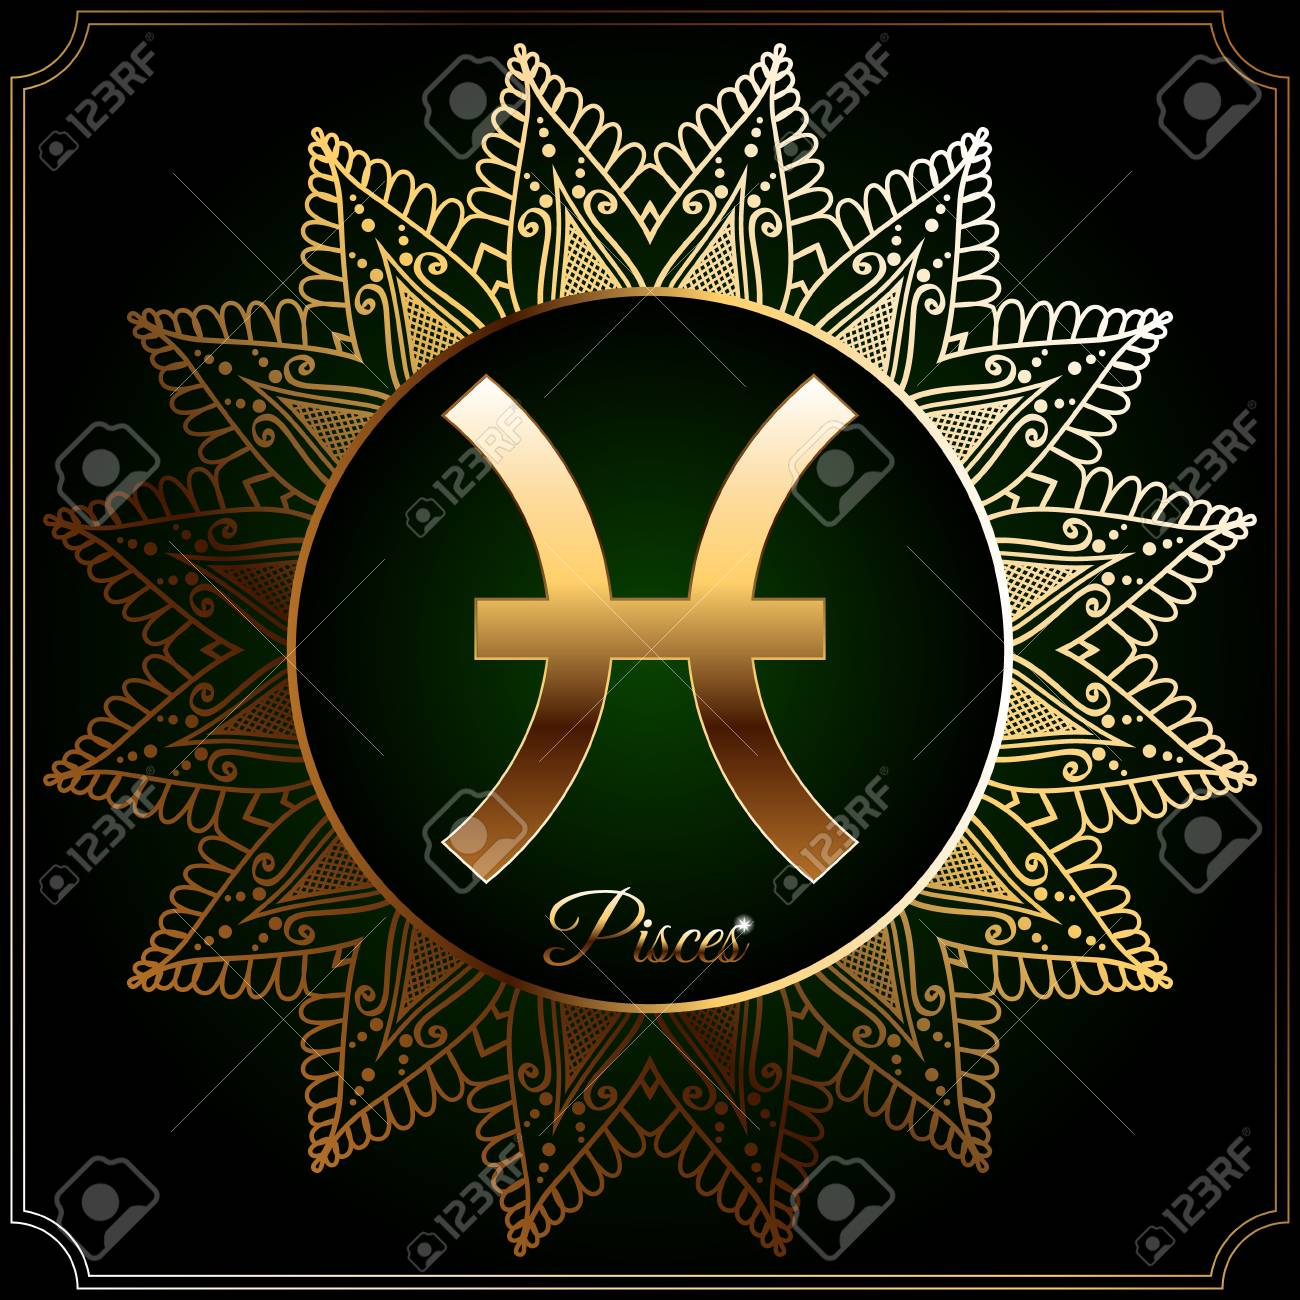 9556e2db2 Astrological zodiac sign in golden circle with oriental pattern. Pisces.  Stock Vector - 73427556